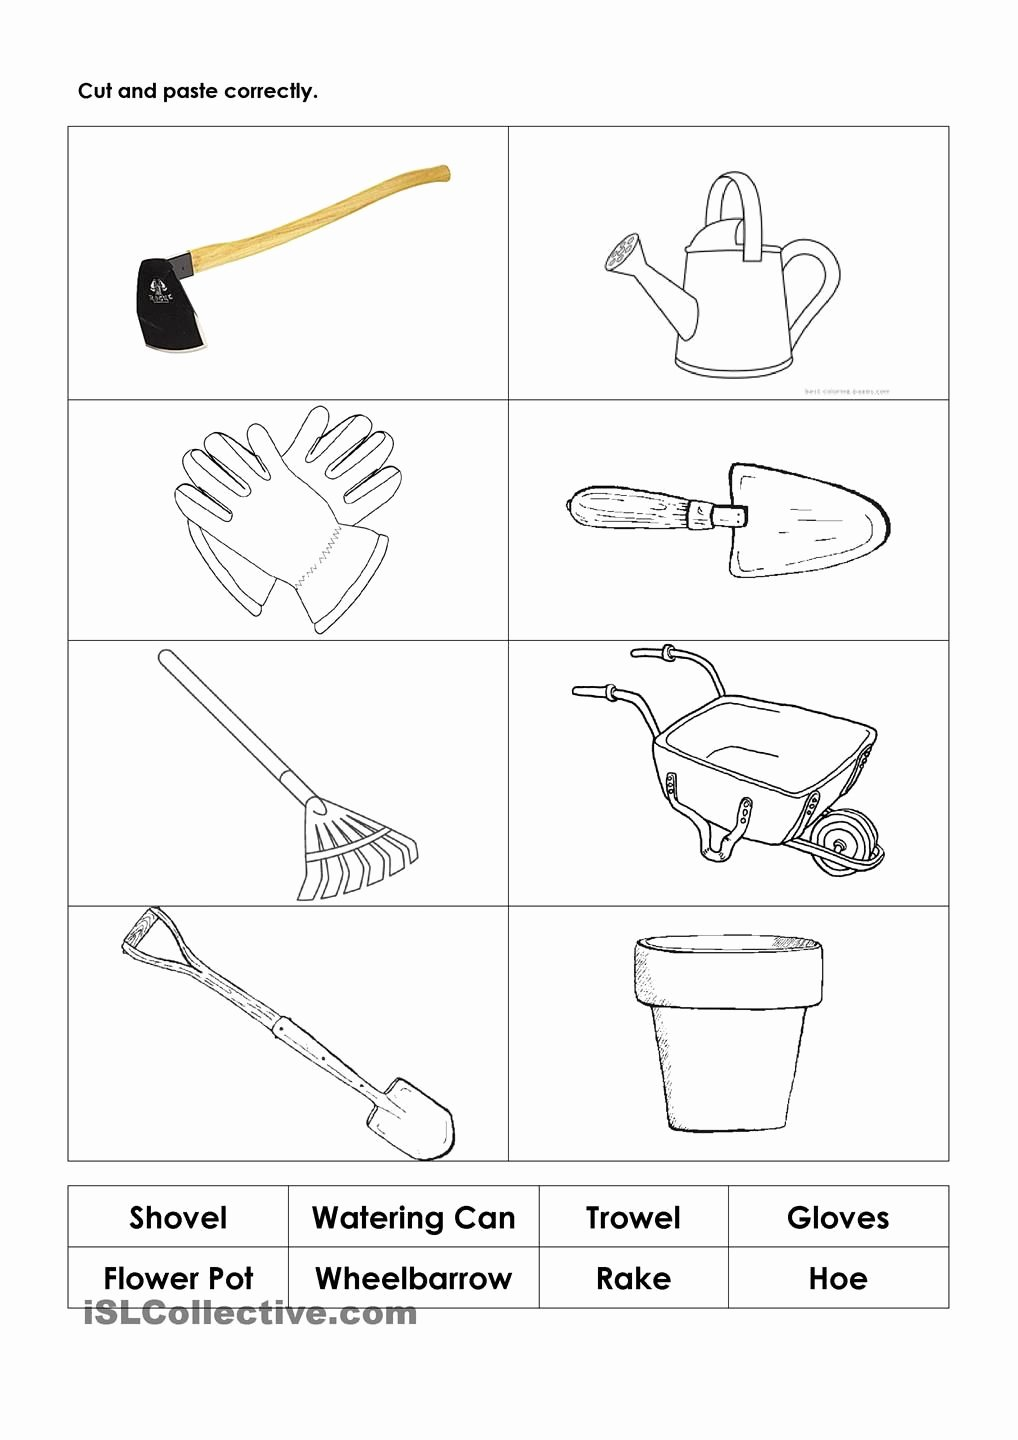 Tools Worksheets for Preschoolers Lovely Gardening tools